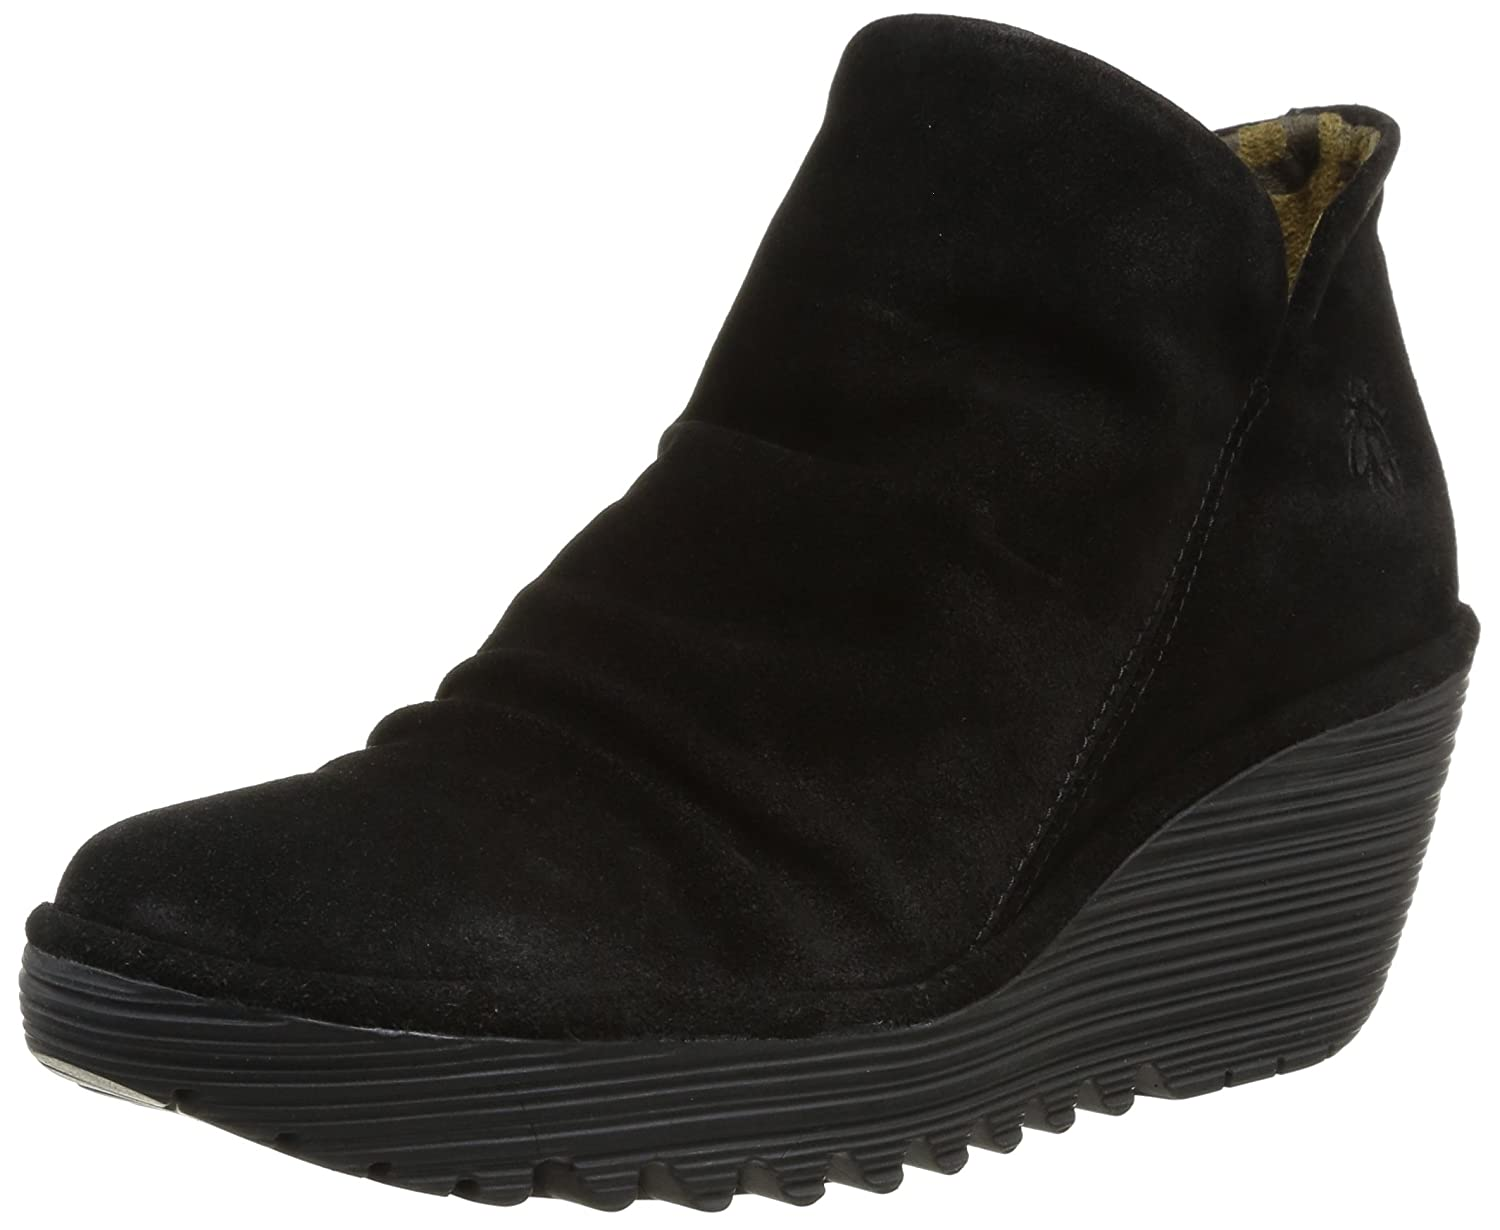 FLY London Women's Yip Boot B00IYJDZ74 36 M EU / 5.5 B(M) US|Black Oiled